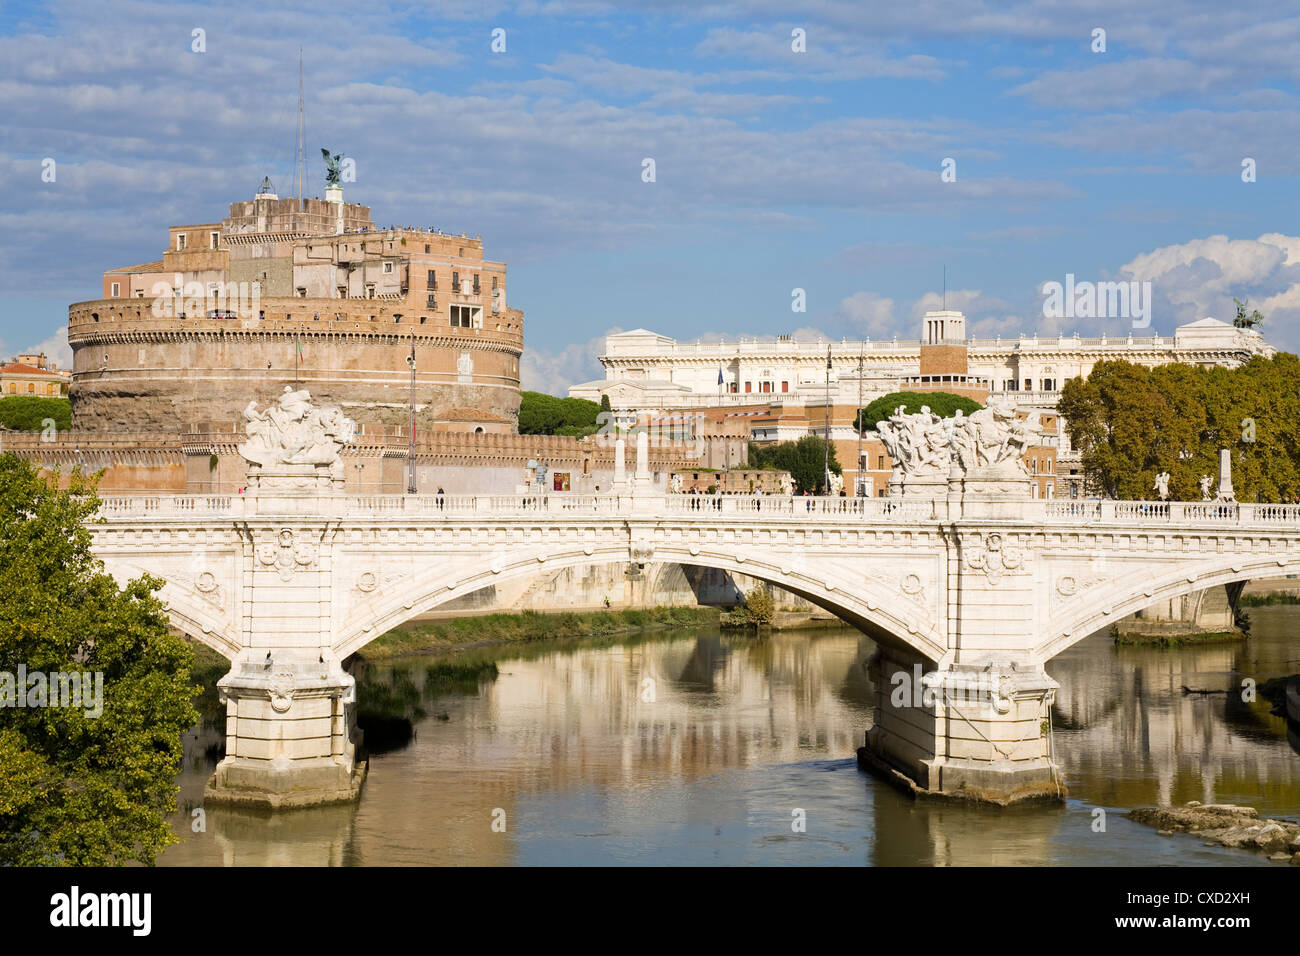 Vittorio Emanuelle bridge and St. Angelo Castle and National Museum, Rome, Lazio, Italy, Europe - Stock Image